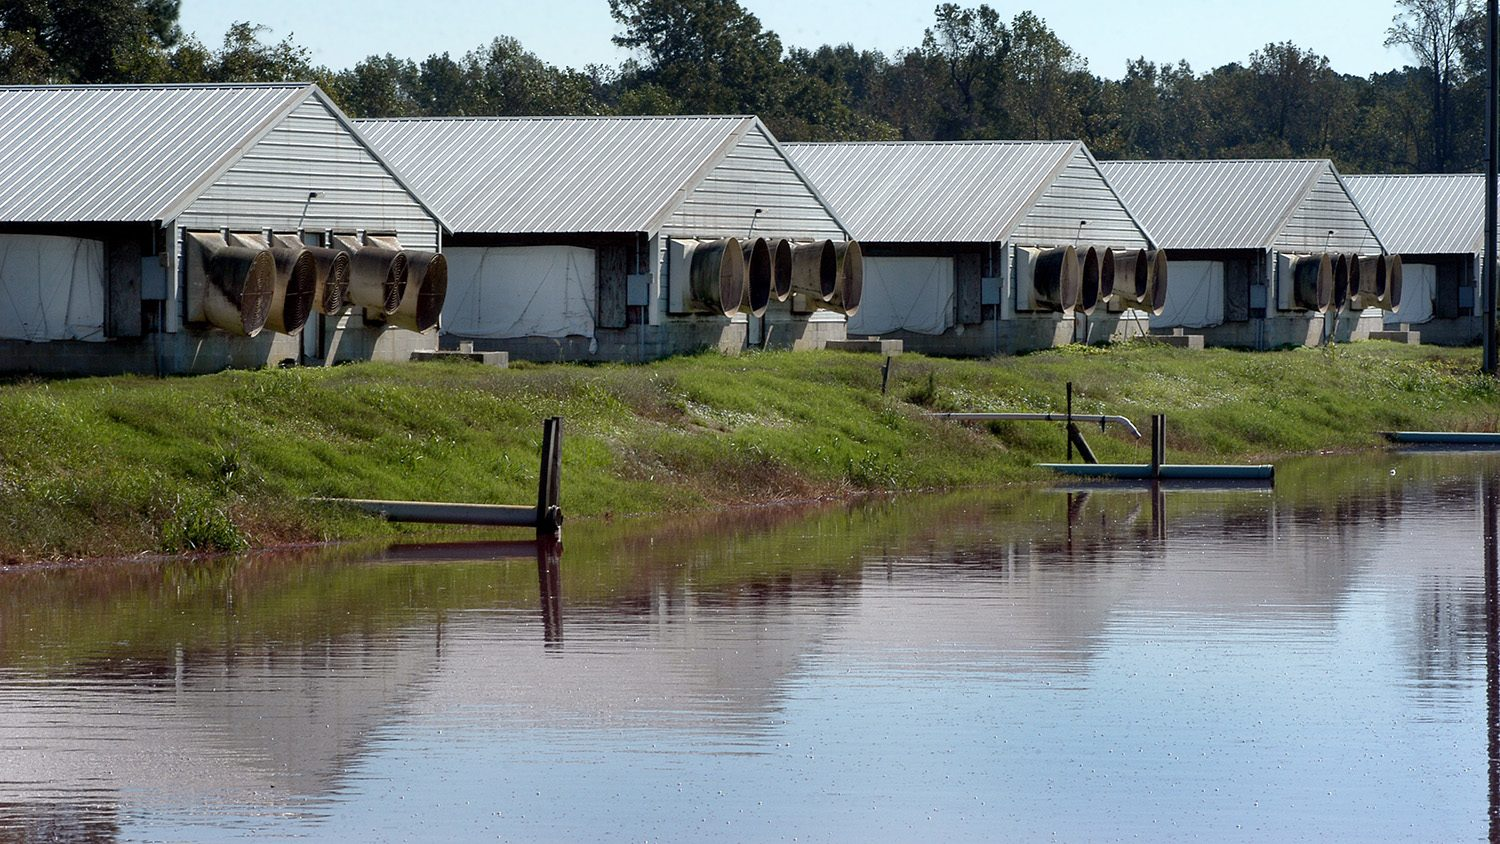 Waste lagoon and hog houses on a farm outside of Kinston.